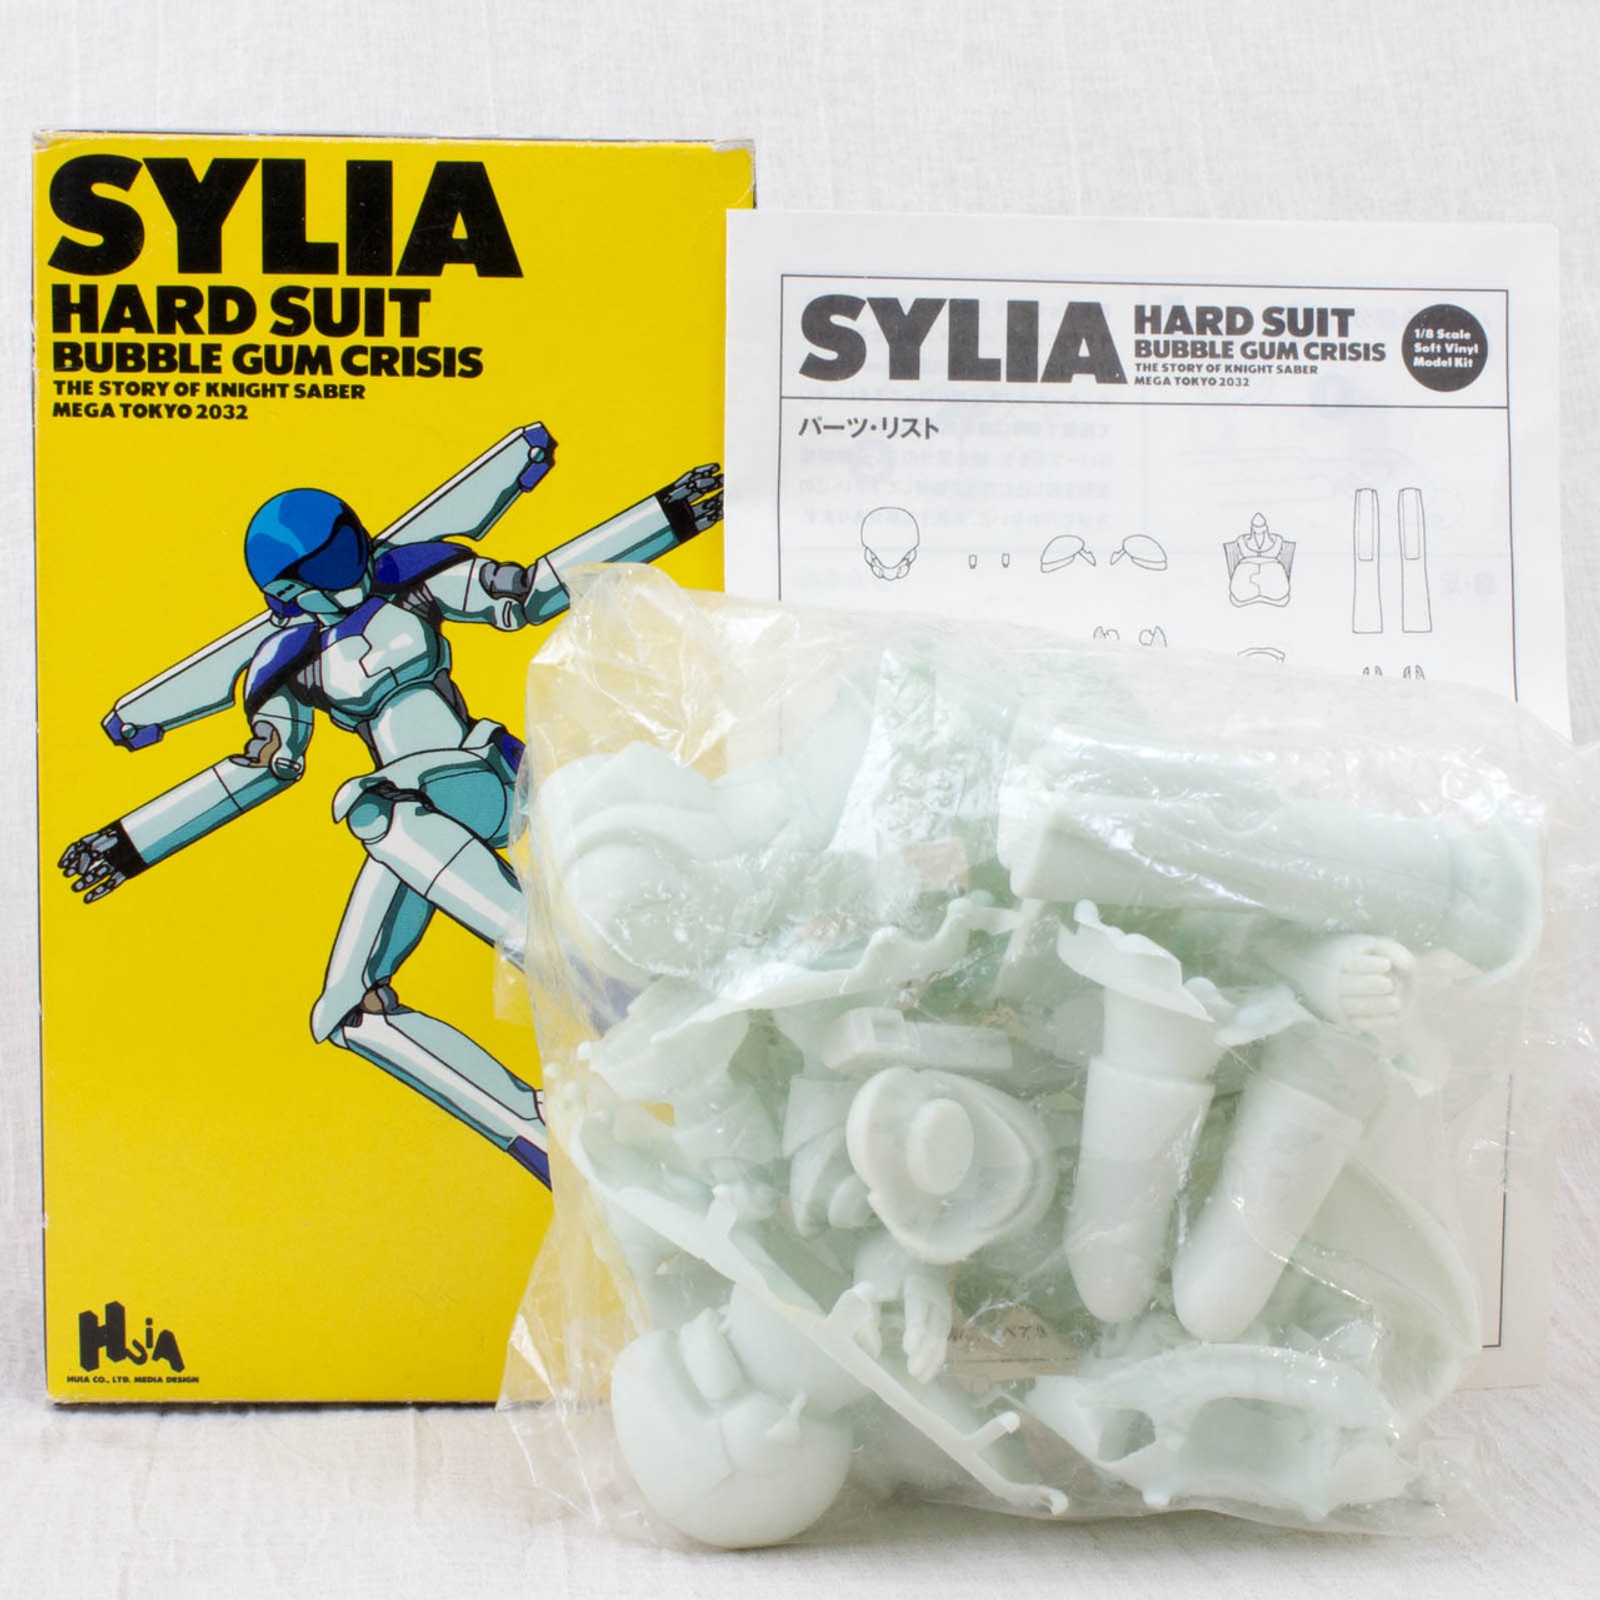 Bubblegum Crisis SYLIA Hard Suit 1/8 Scale Soft Vinyl Model Kit JAPAN ANIME